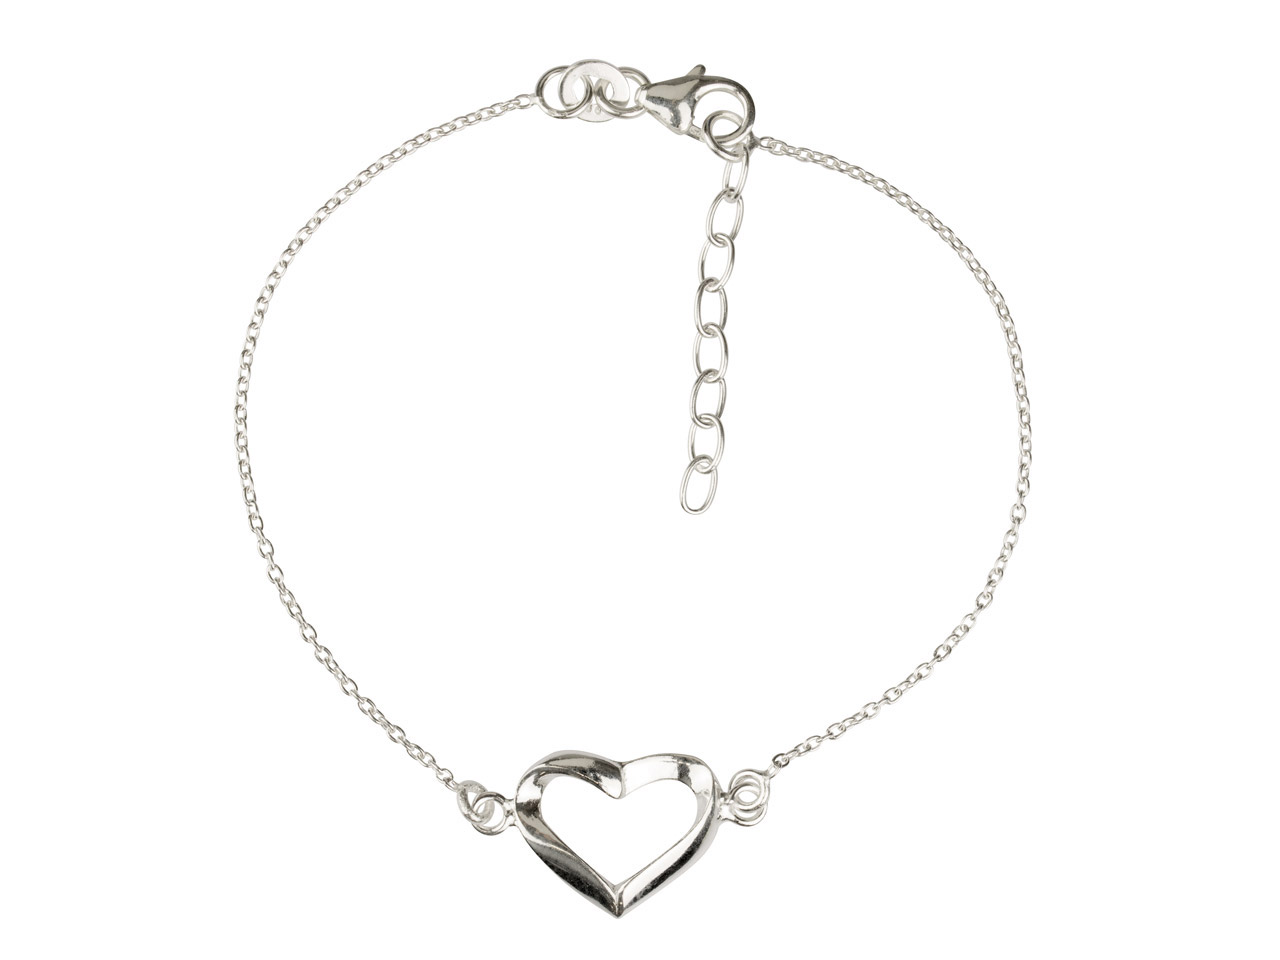 Sterling Silver Bracelet With Heart Locator, 7.5